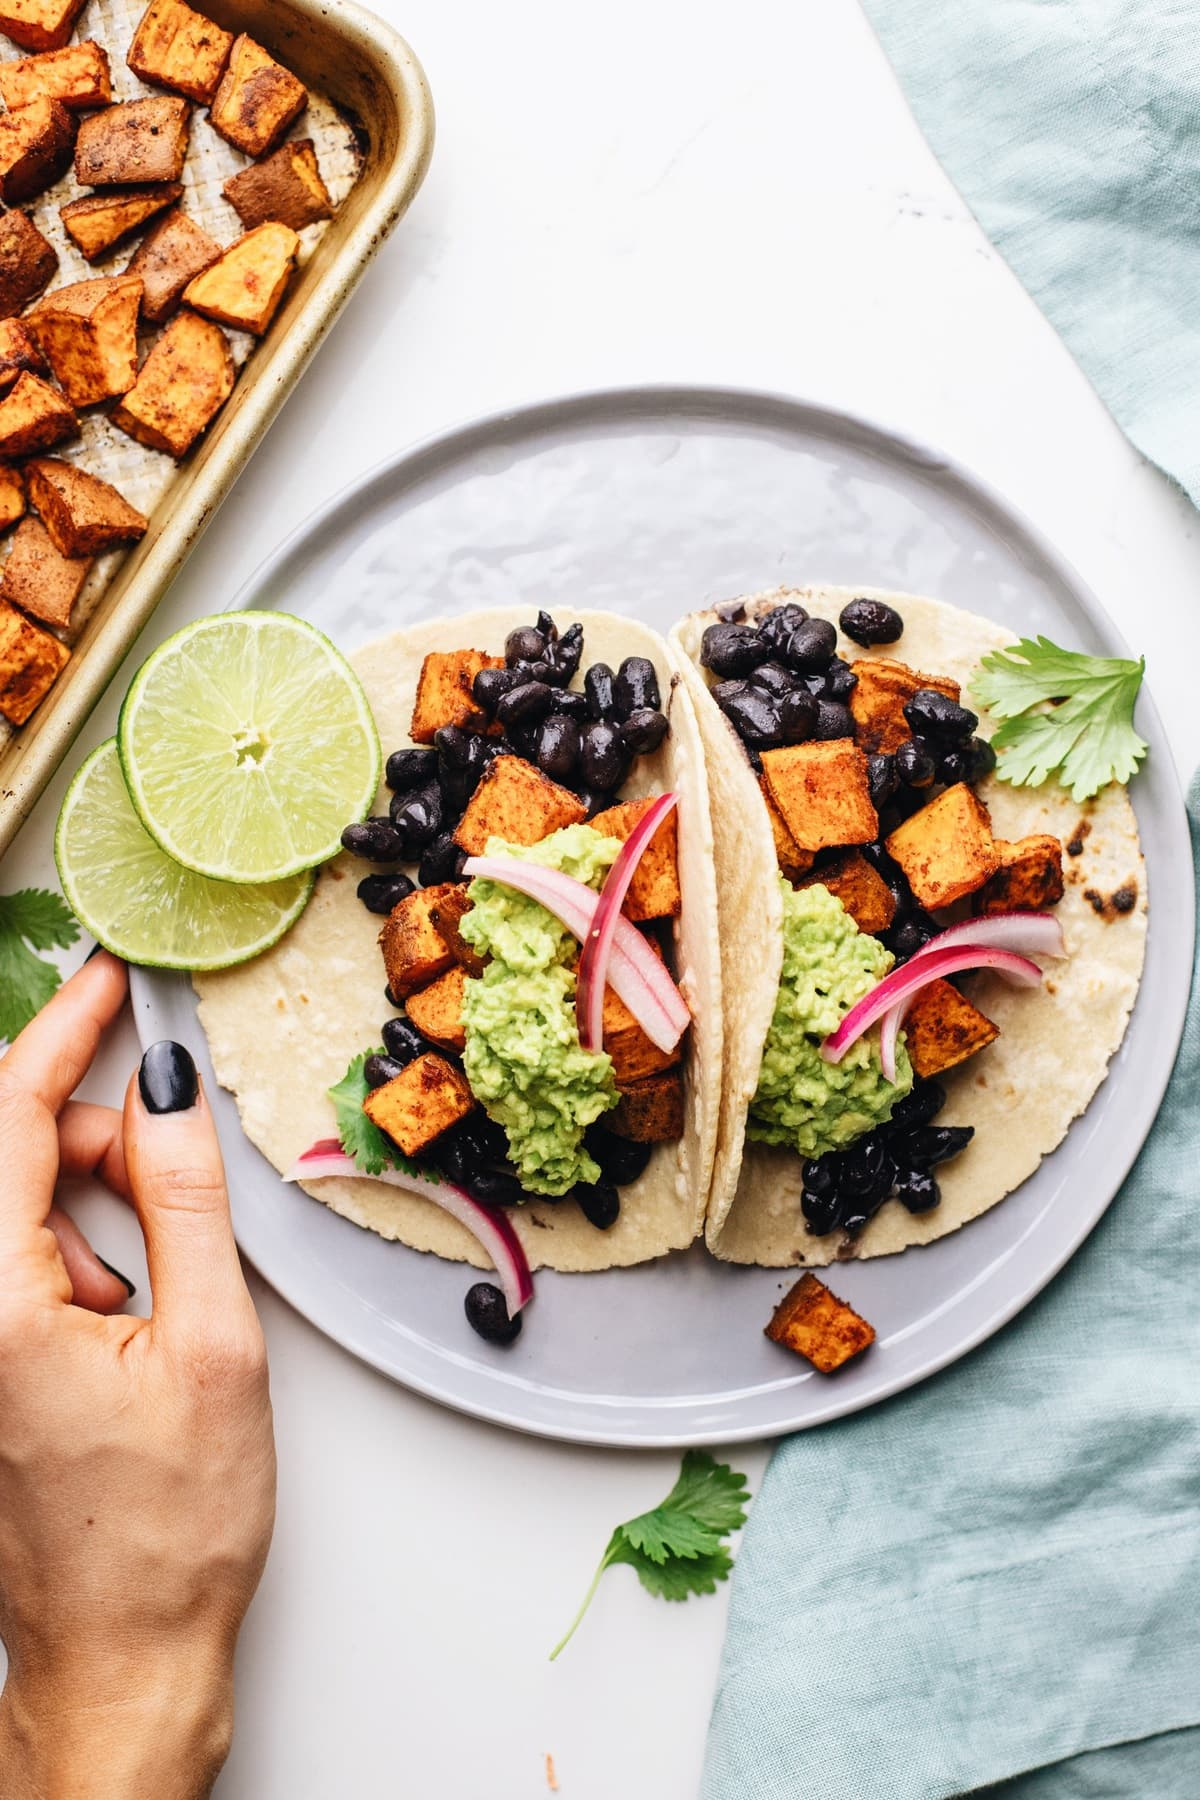 A hand holding a grey plate with sweet potato black bean tacos with a blue napkin next to it.